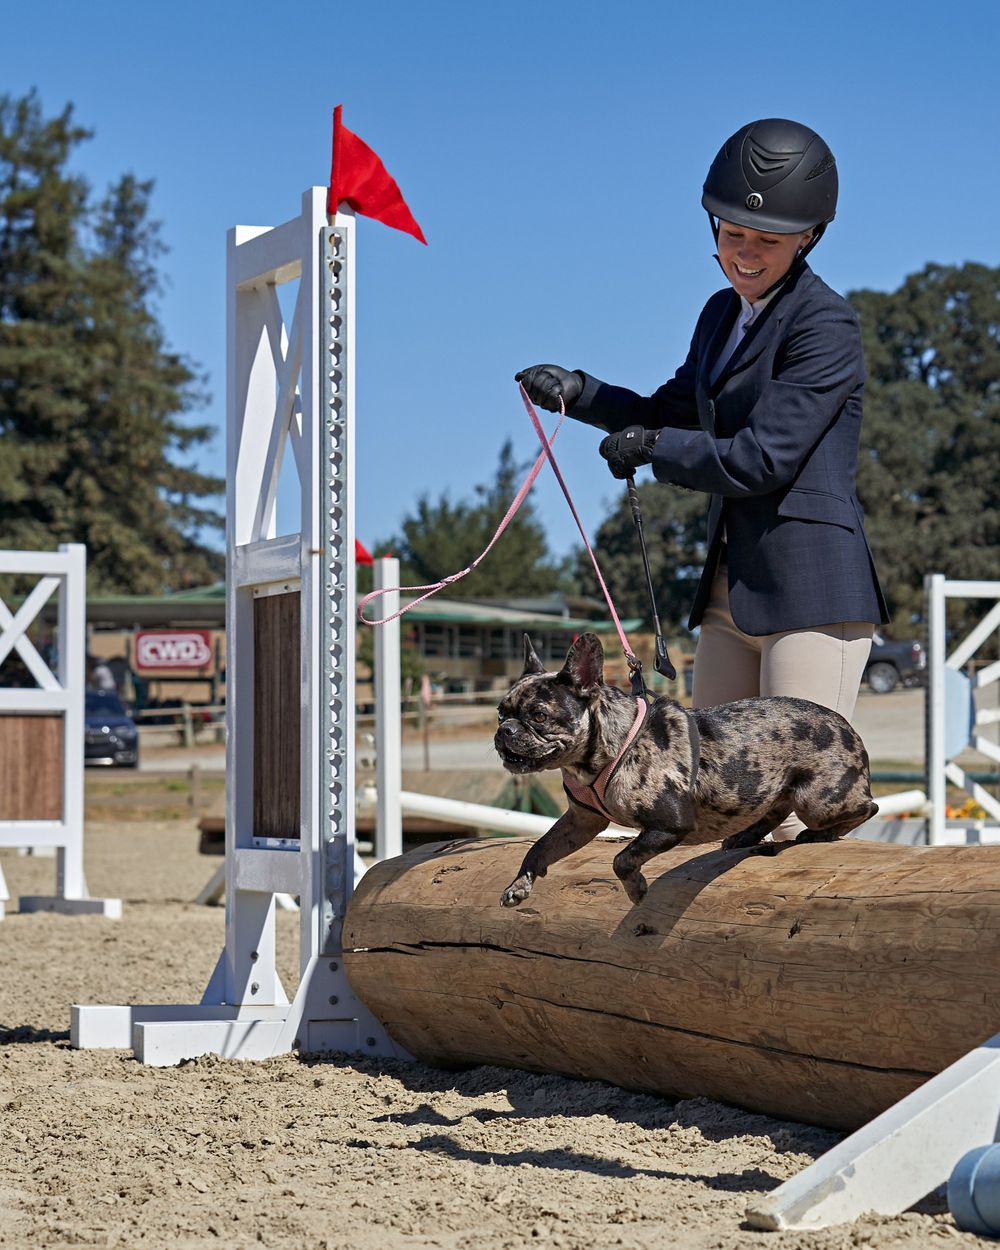 Woodside Pony Club Dog Jumping